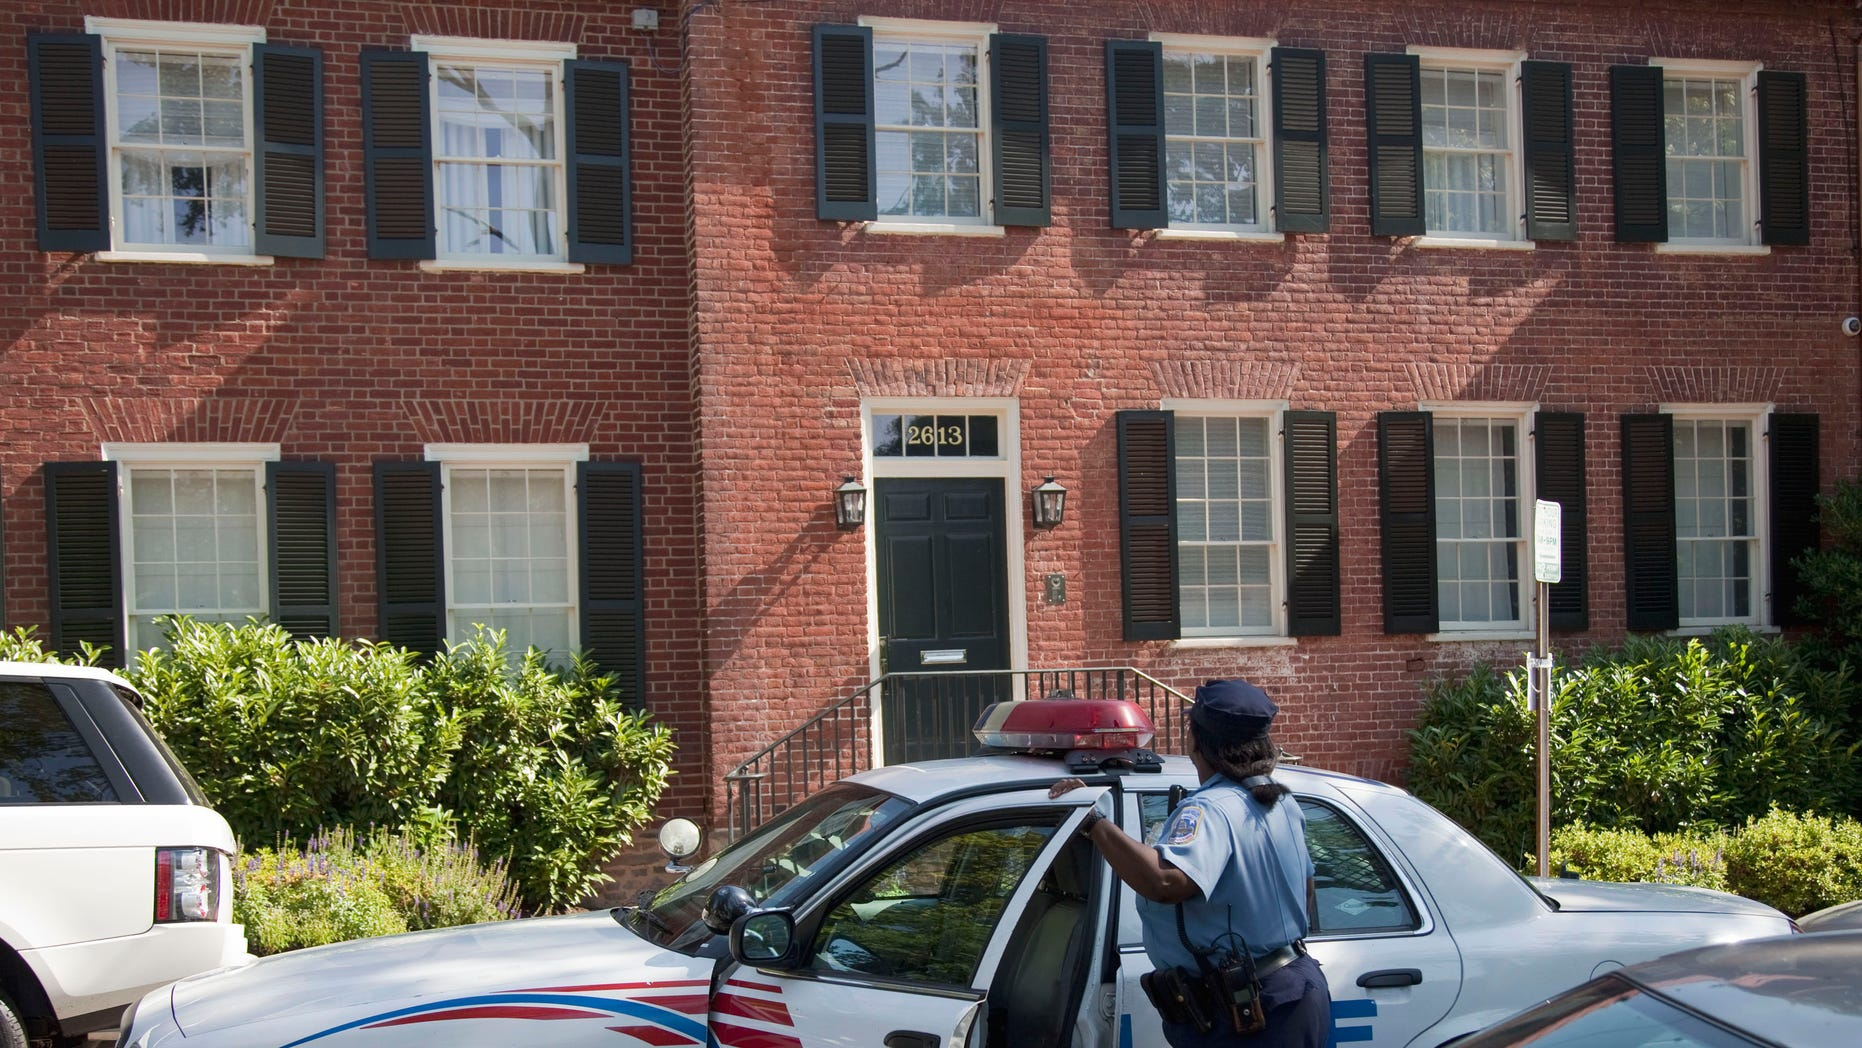 A Washington police officer arrives at the home of former IMF Managing Director Dominique Strauss-Kahn, Thursday, June 2, 2011, in Washington. An alarm company concerned about an open door called police to the home, but an official says there are no signs of a burglary.